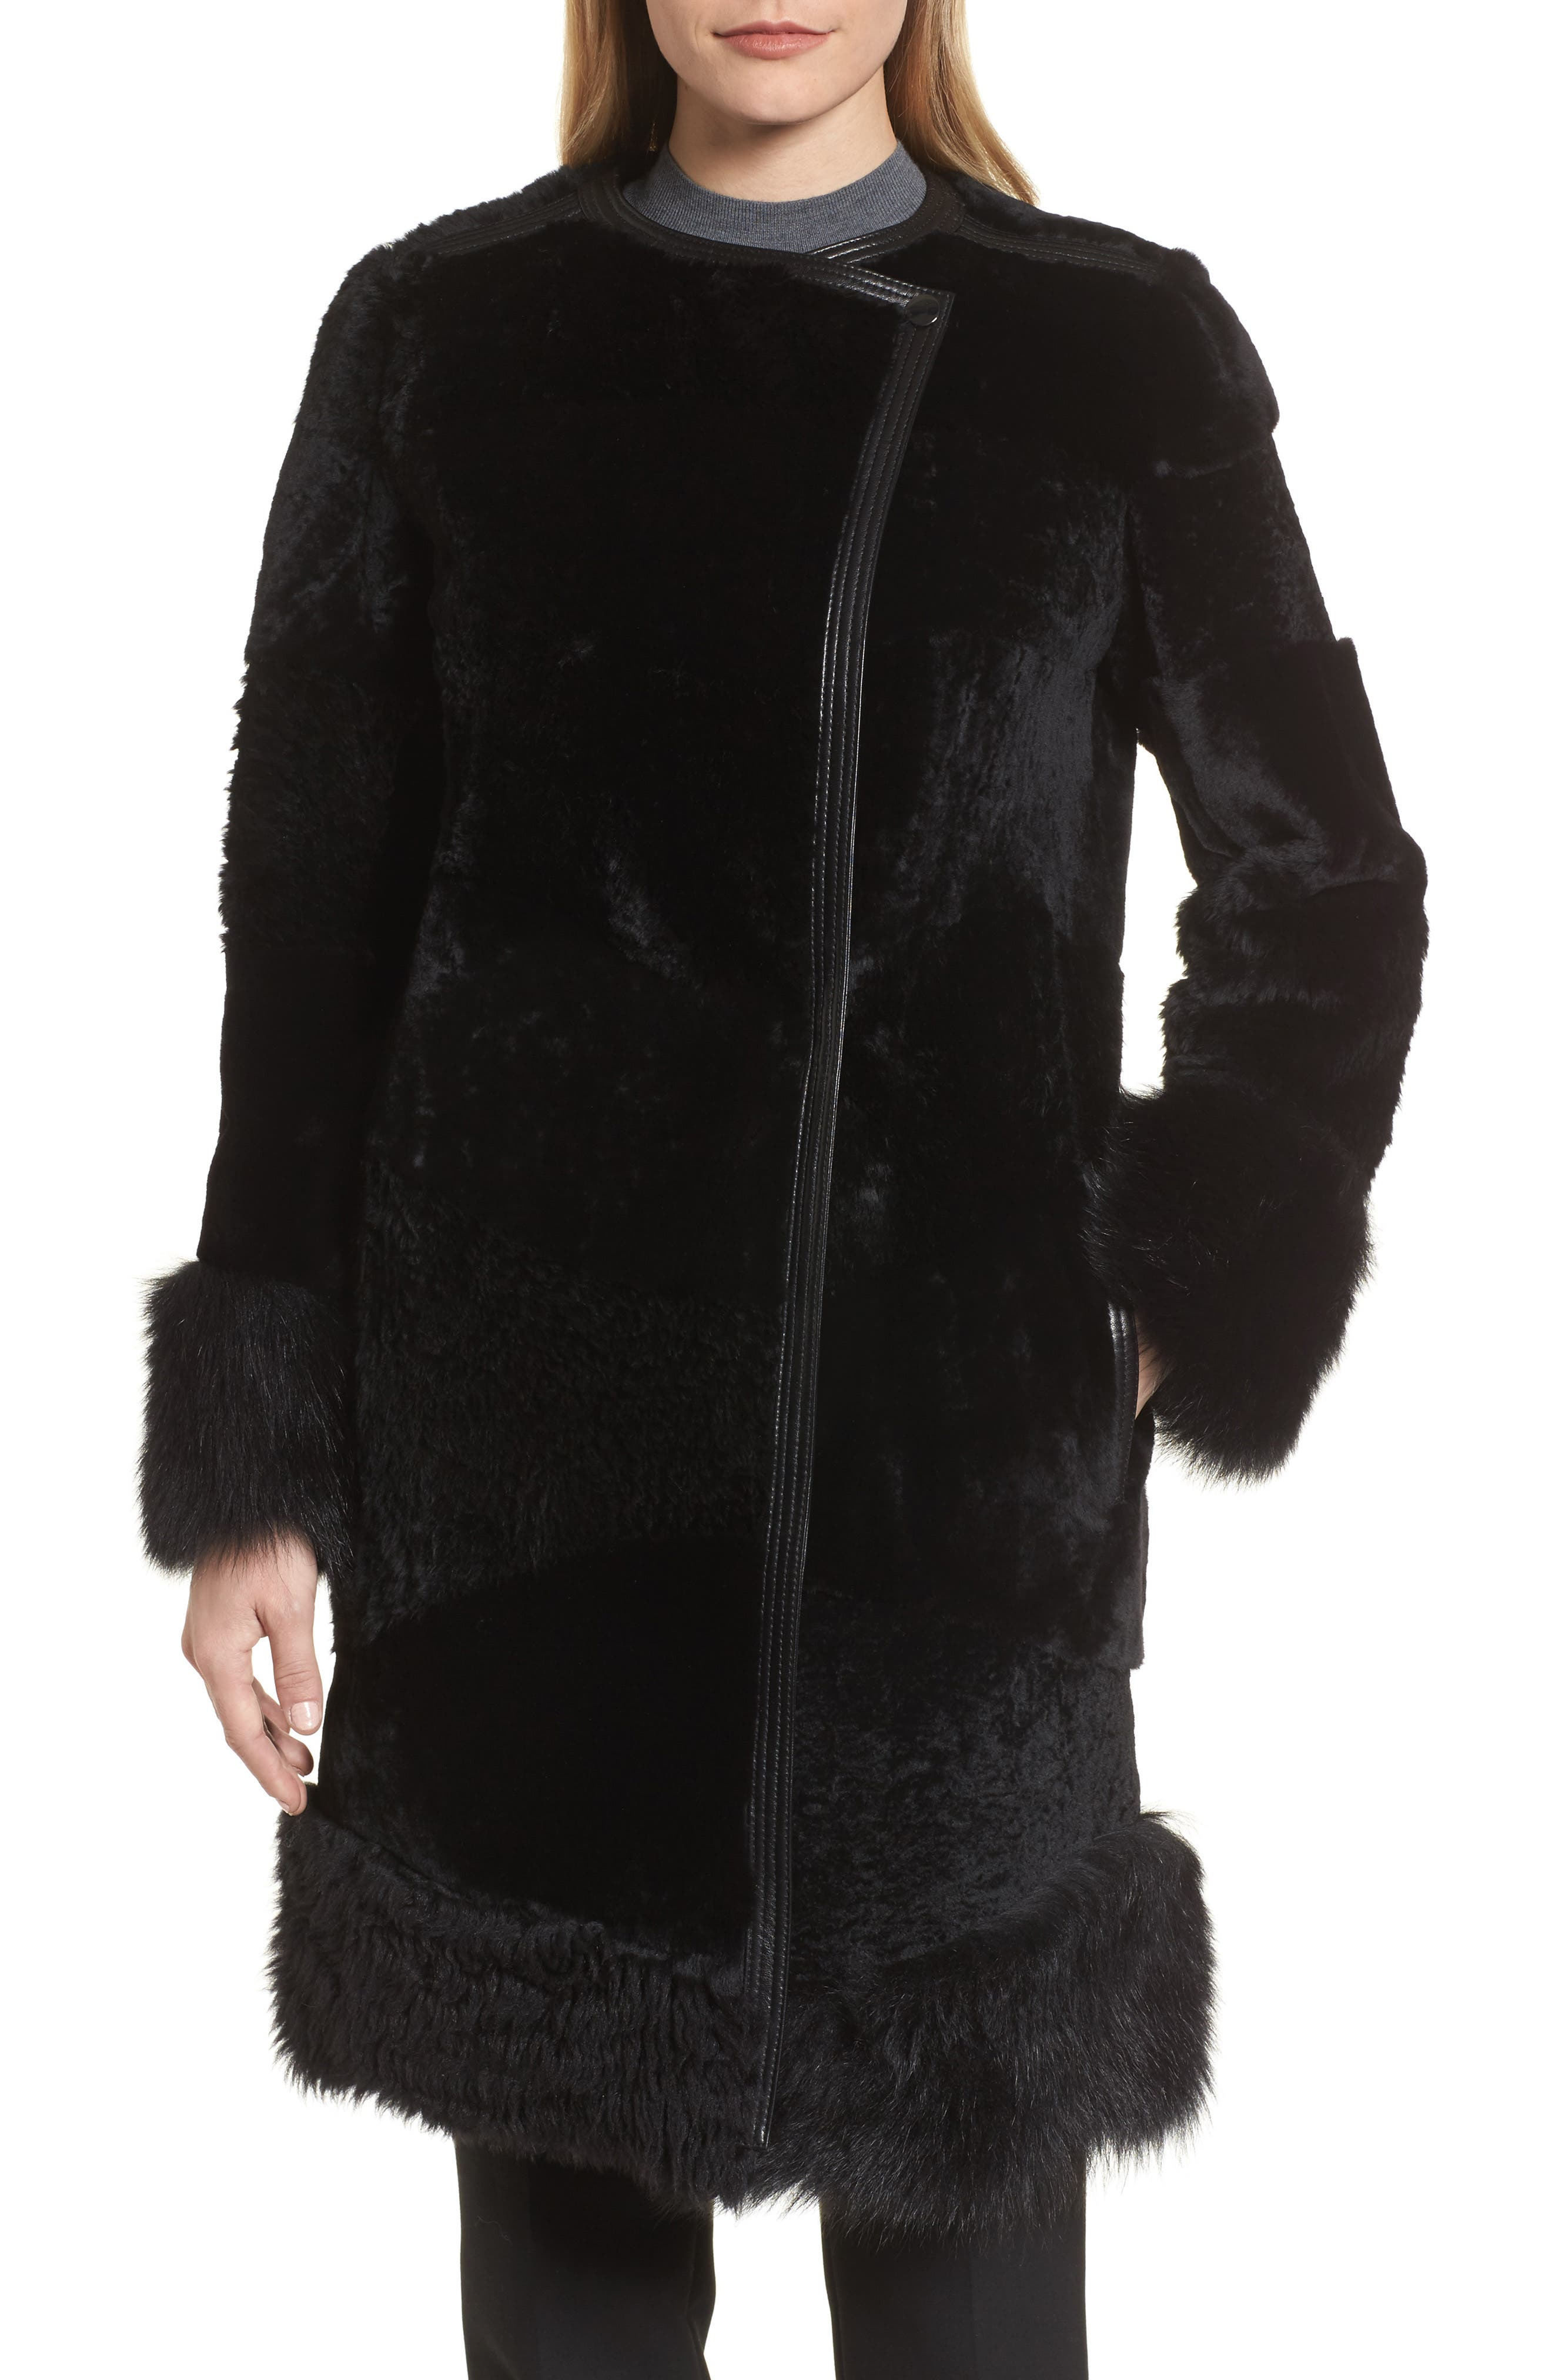 Sopora Long Genuine Shearling & Leather Trim Jacket,                         Main,                         color, 001